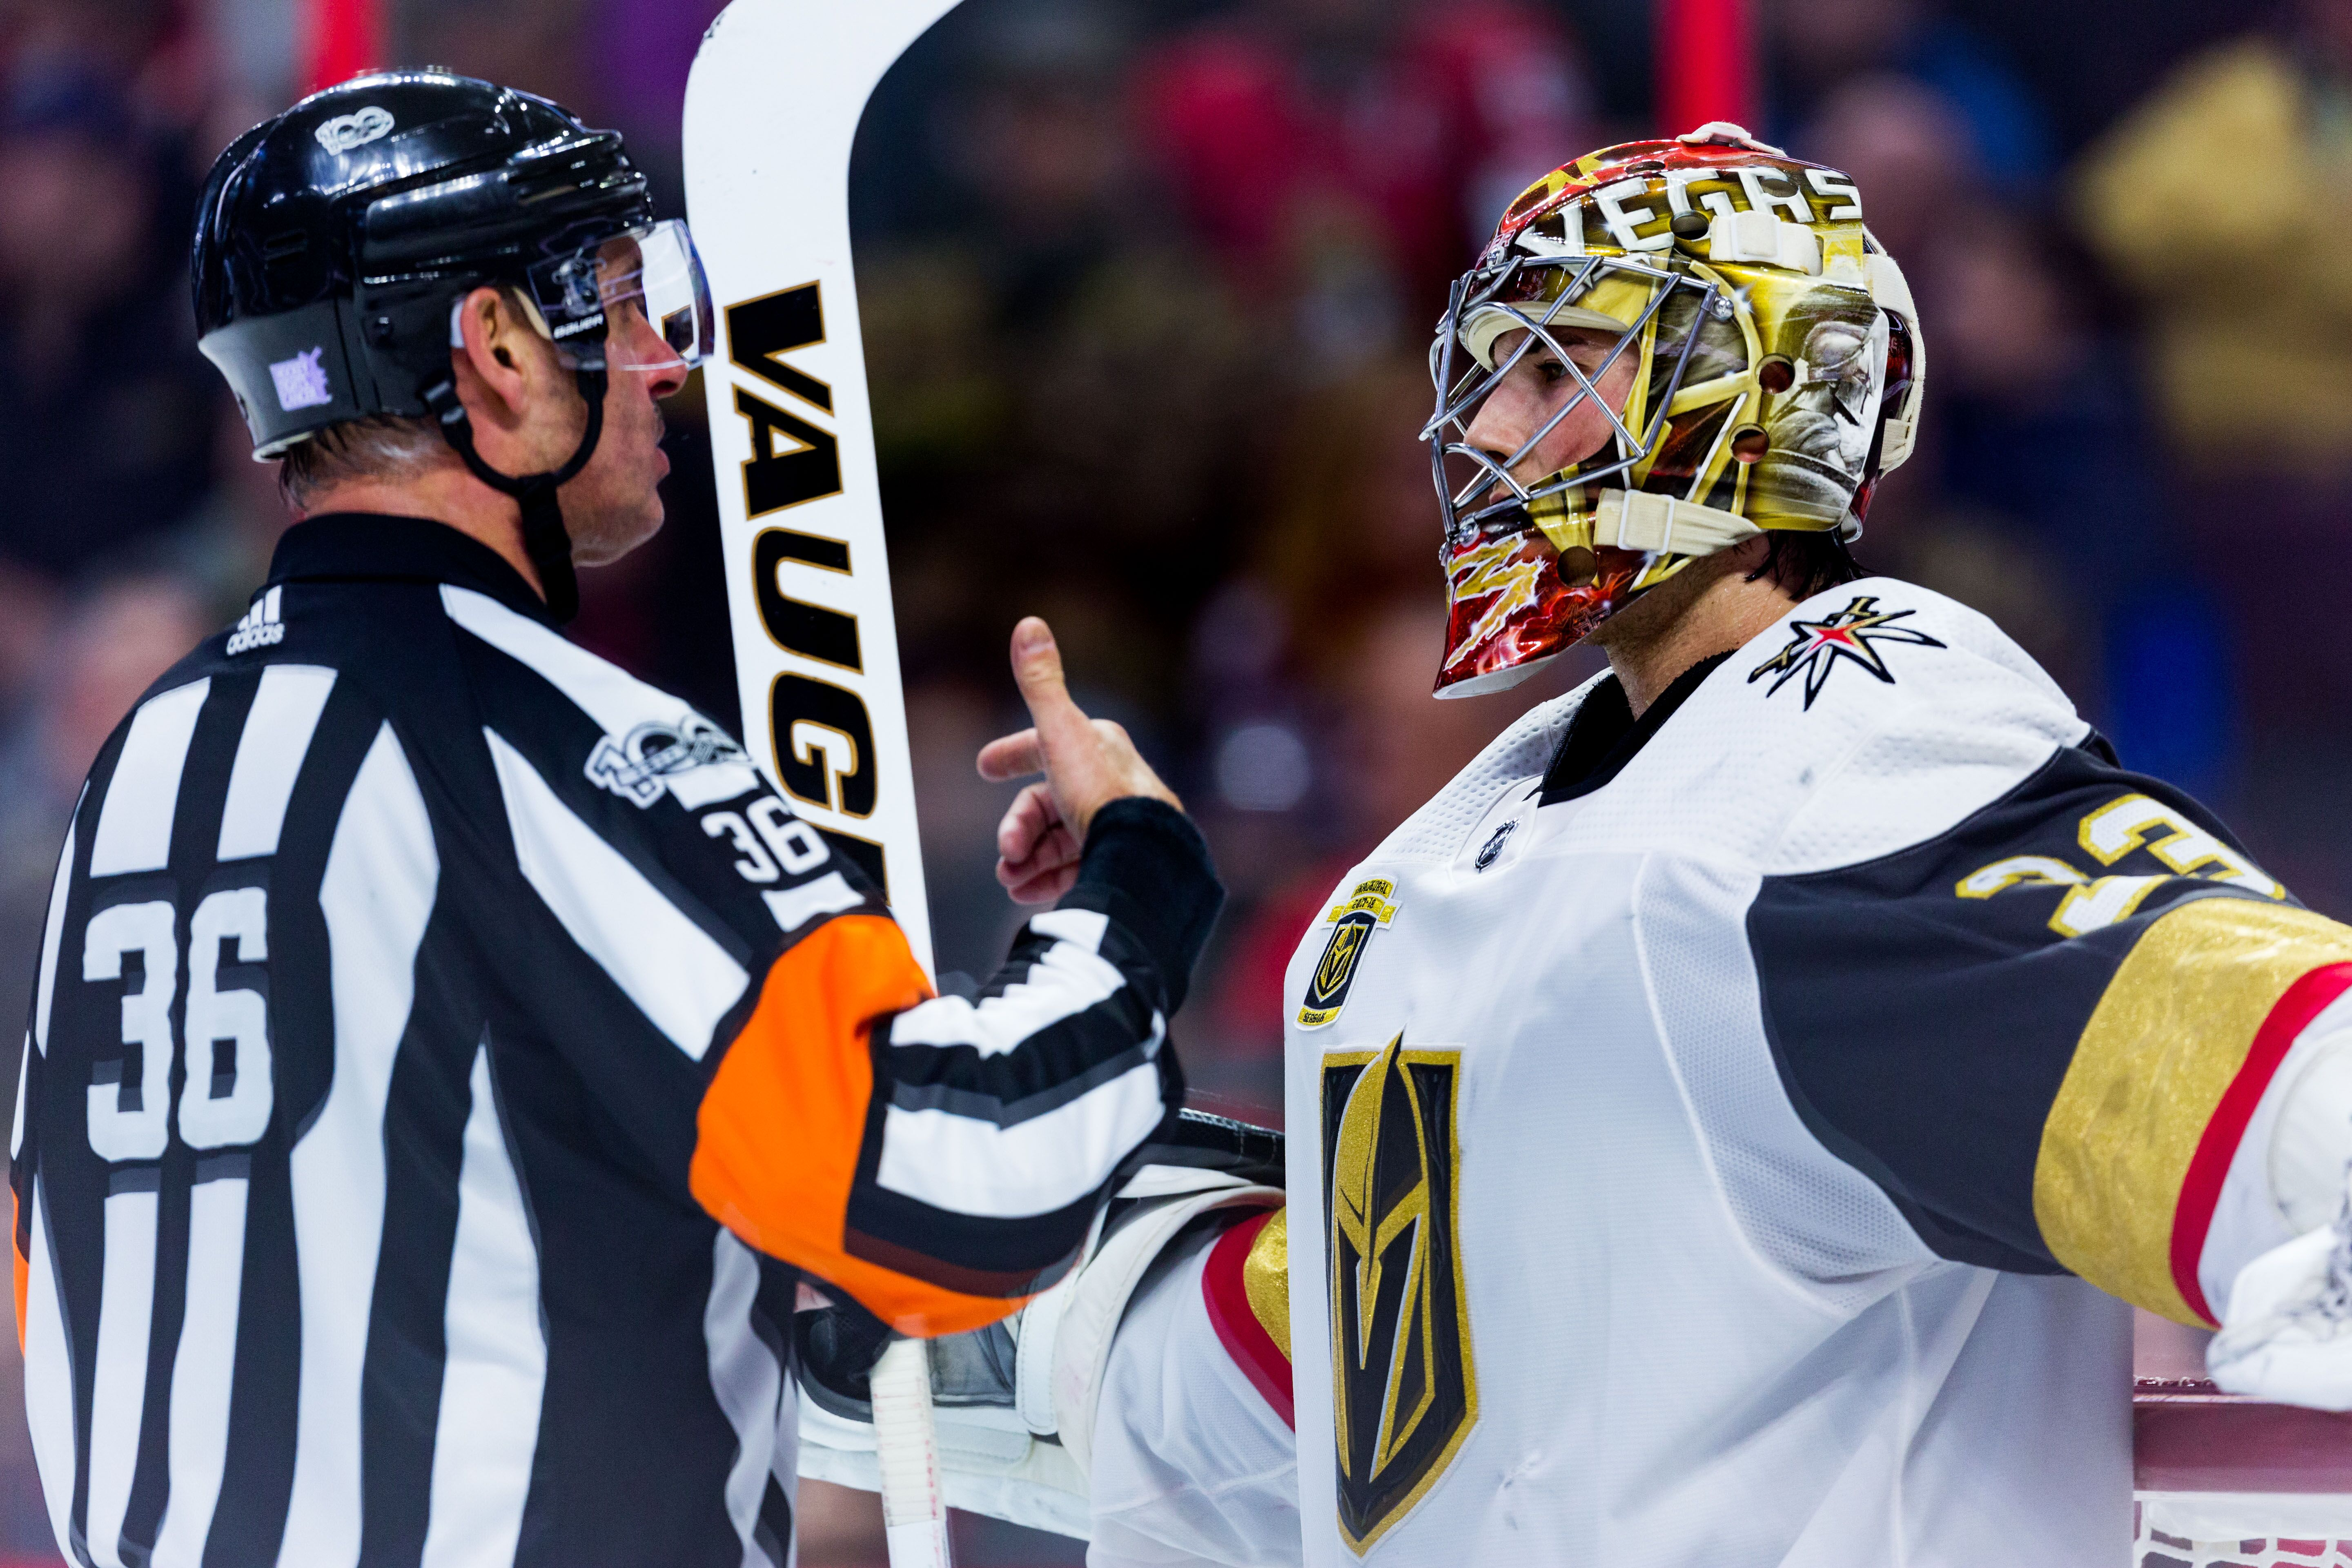 Vegas Golden Knights Goalie Injuries Are A Major Concern